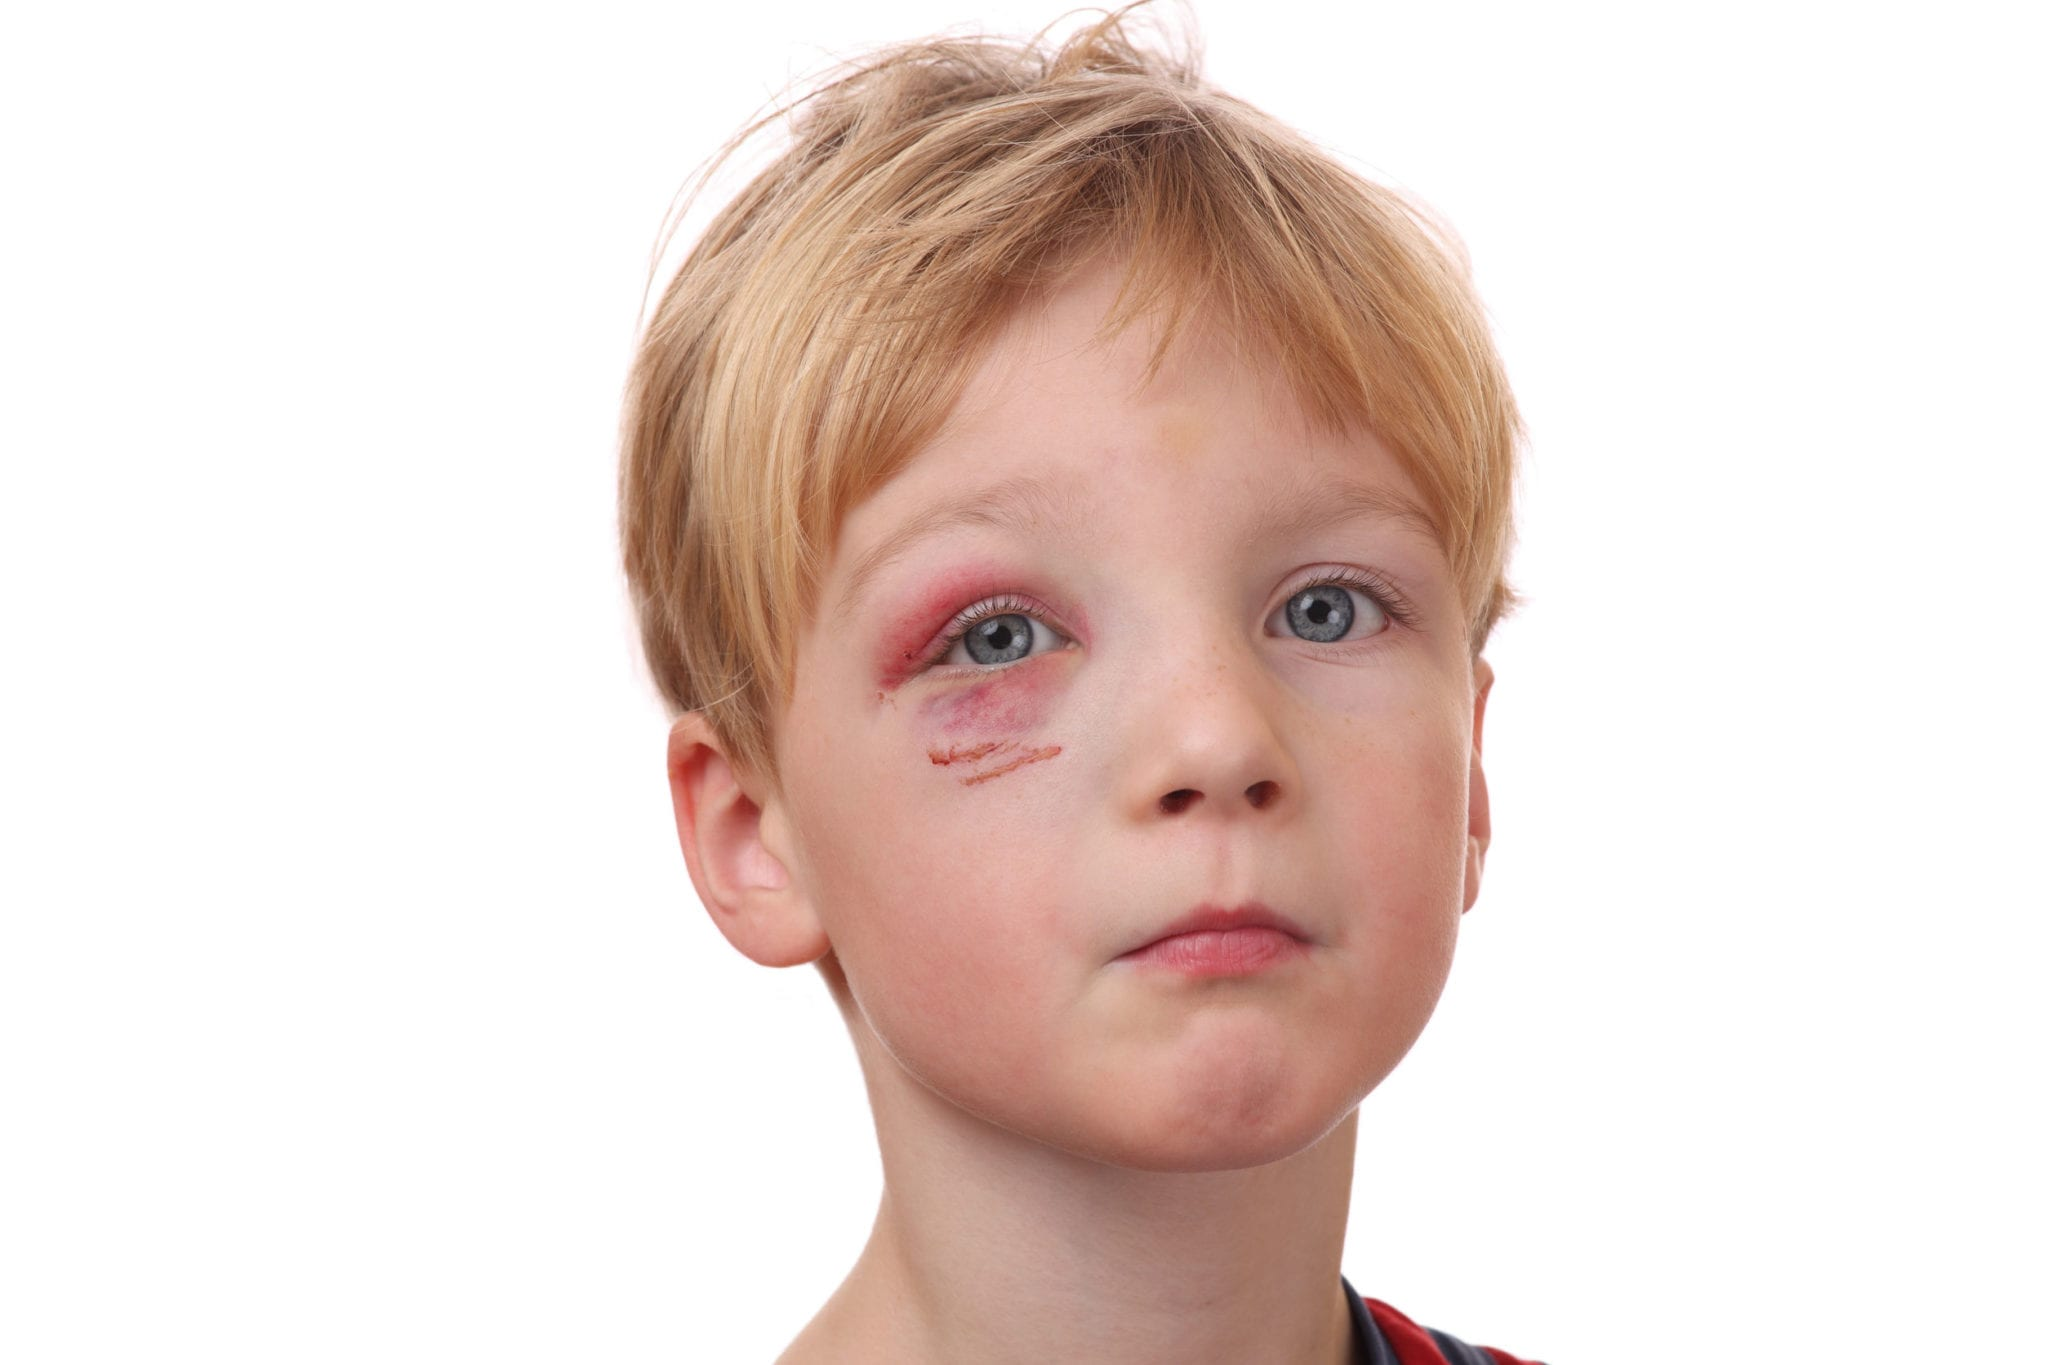 Injury to a Child Doesn't Always Indicate Abuse in Texas